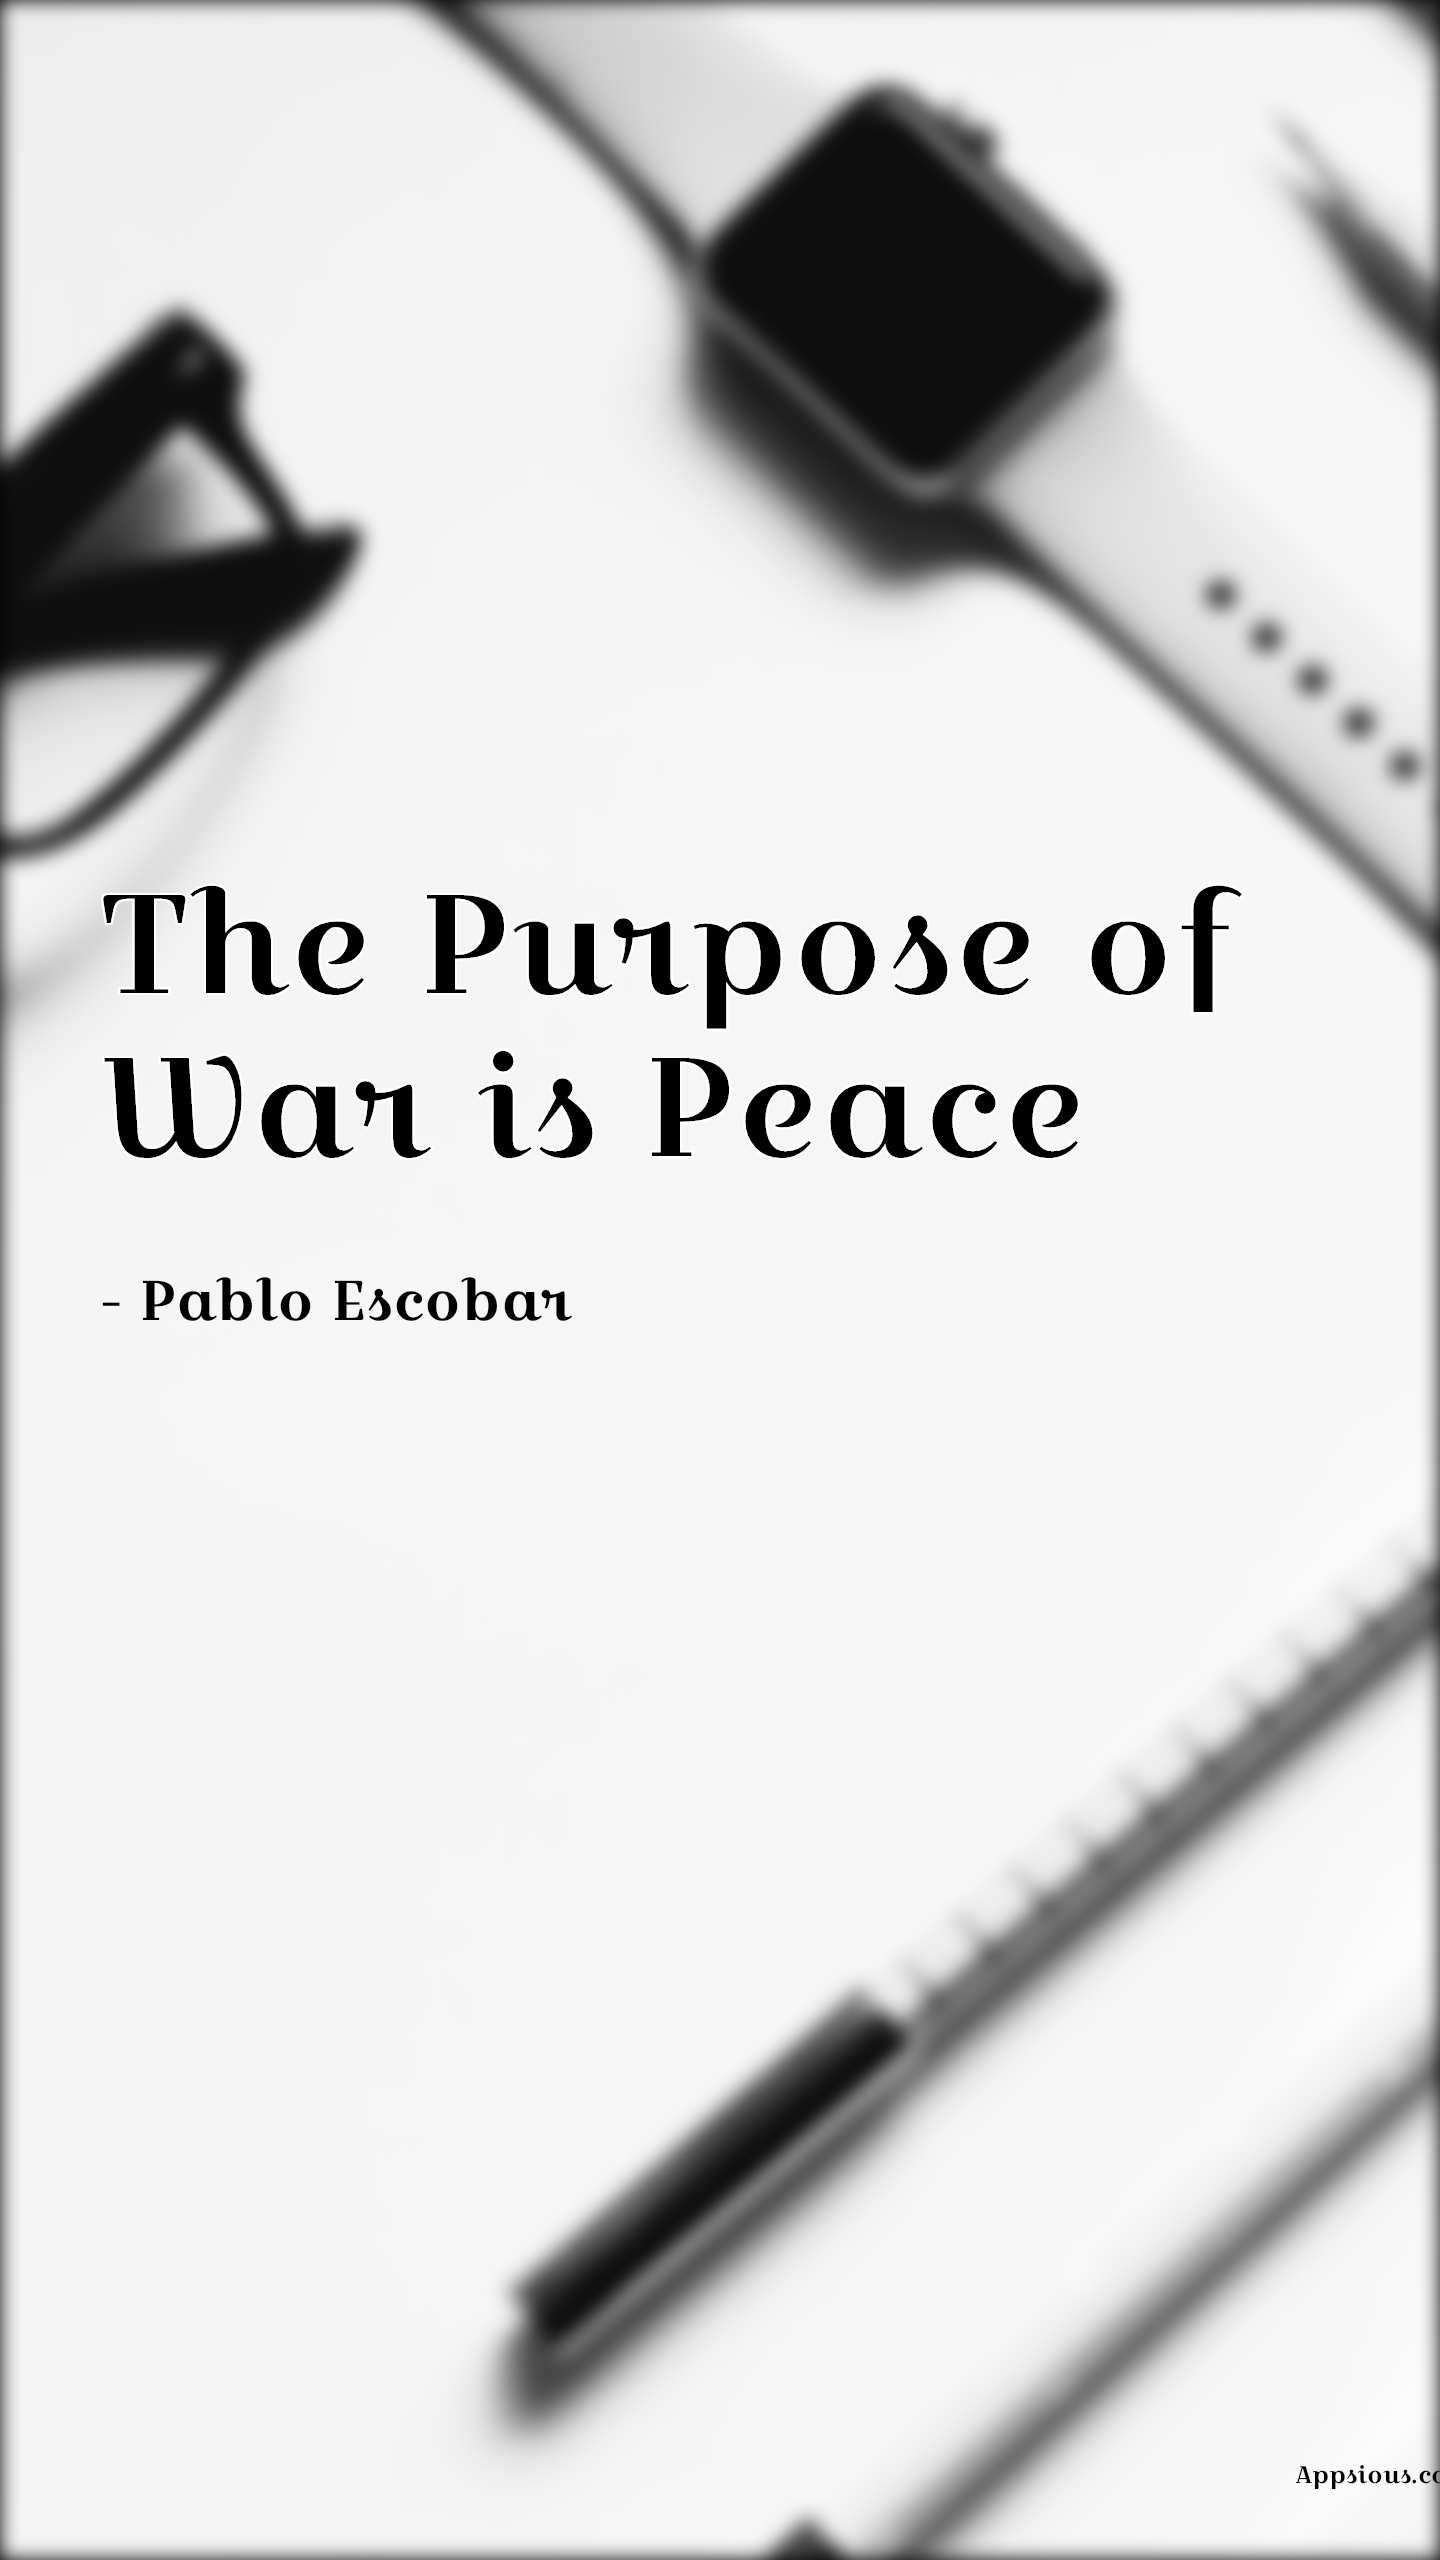 The Purpose of War is Peace